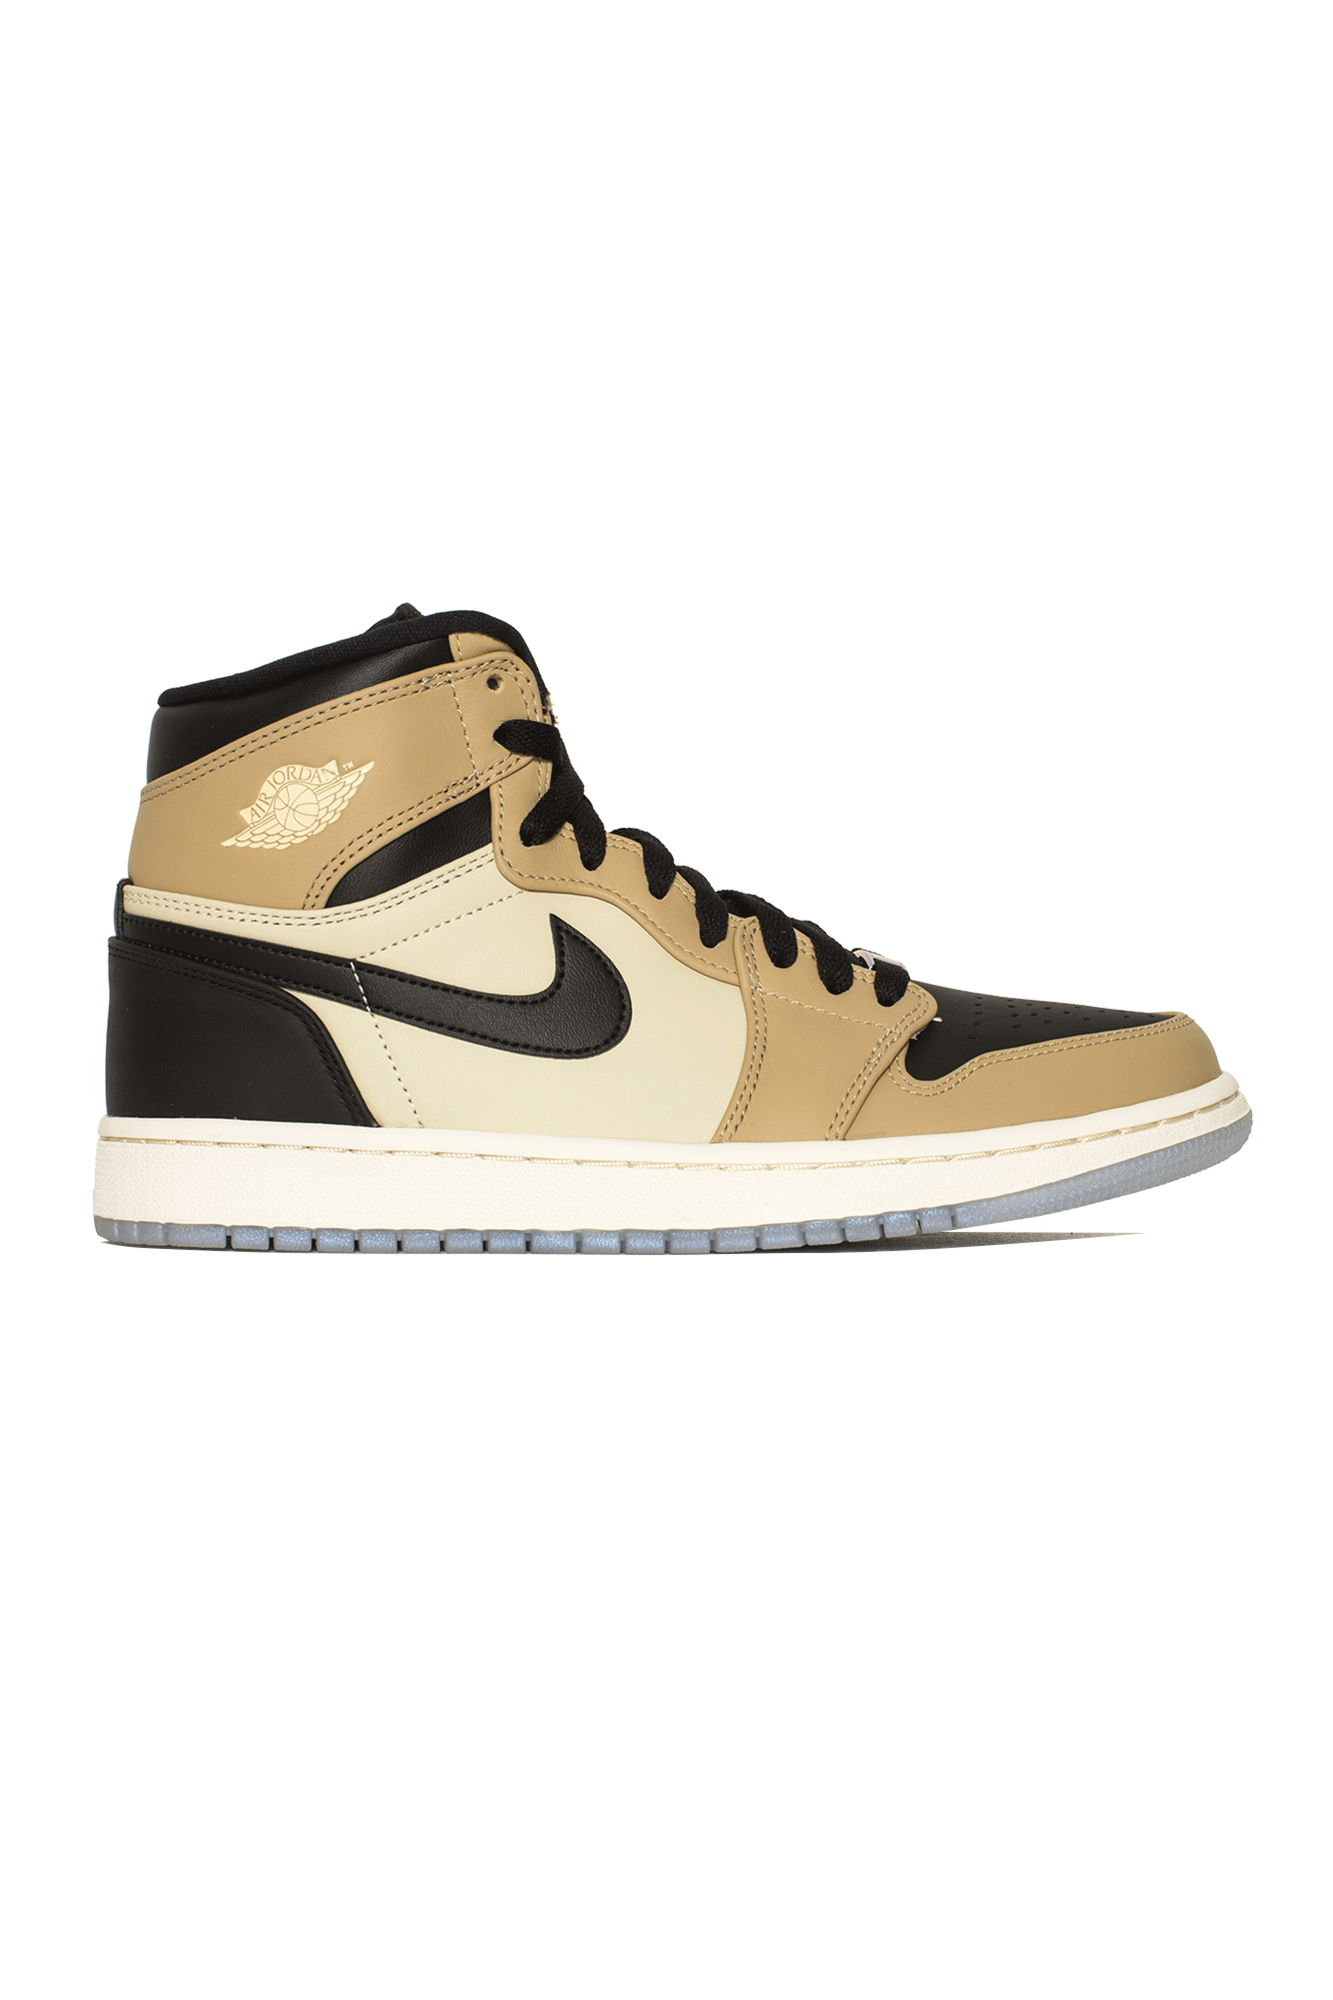 "WMNS 1 Retro High ""Mushroom"" Black"